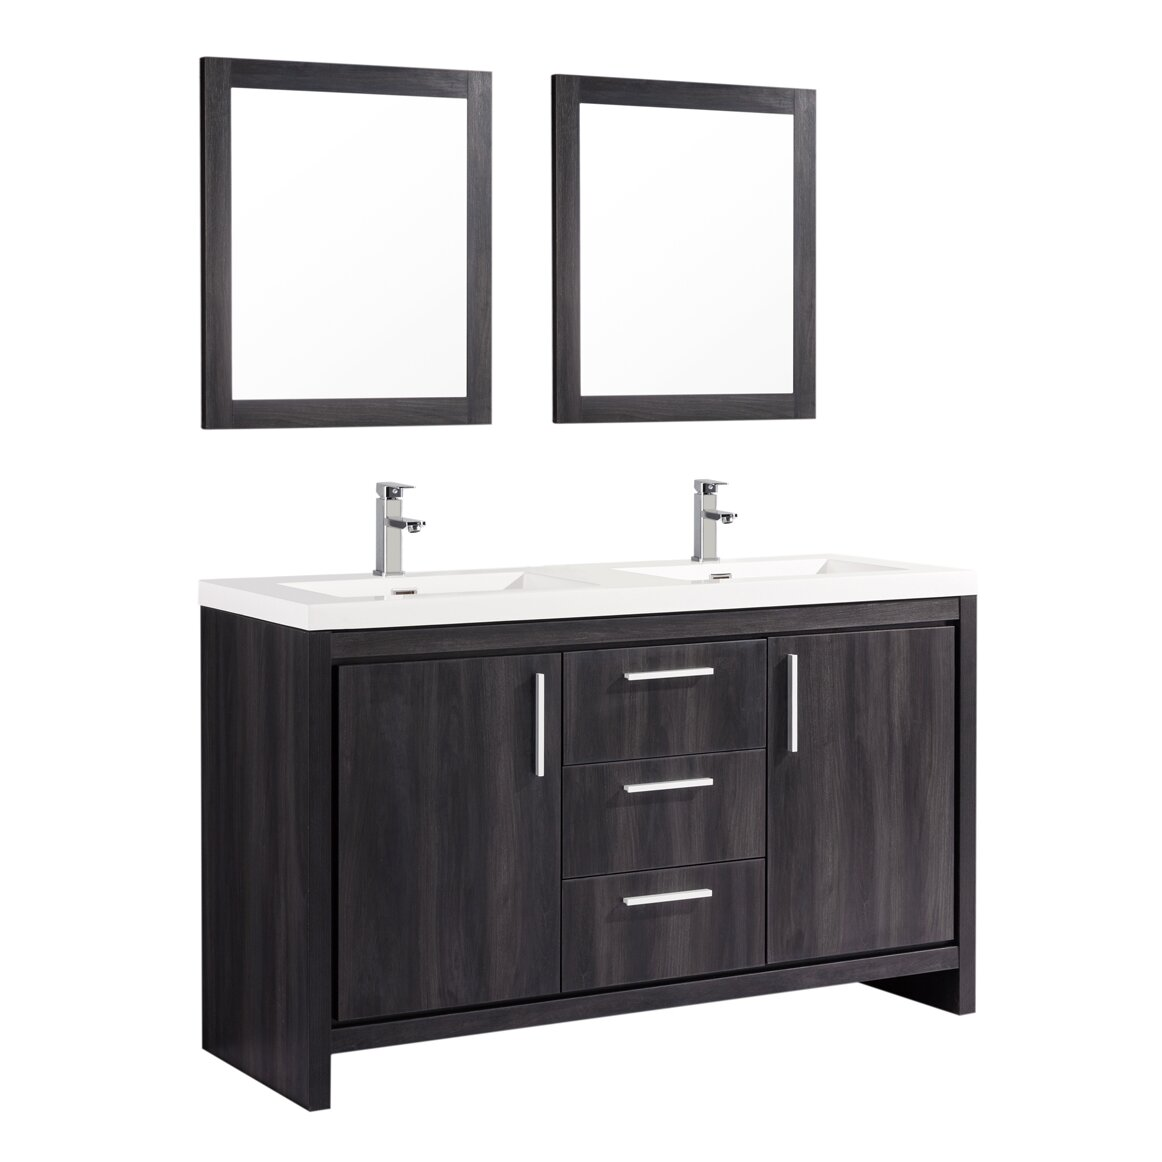 Mtdvanities miami 59 double sink modern bathroom vanity for Modern bathroom sink and vanity